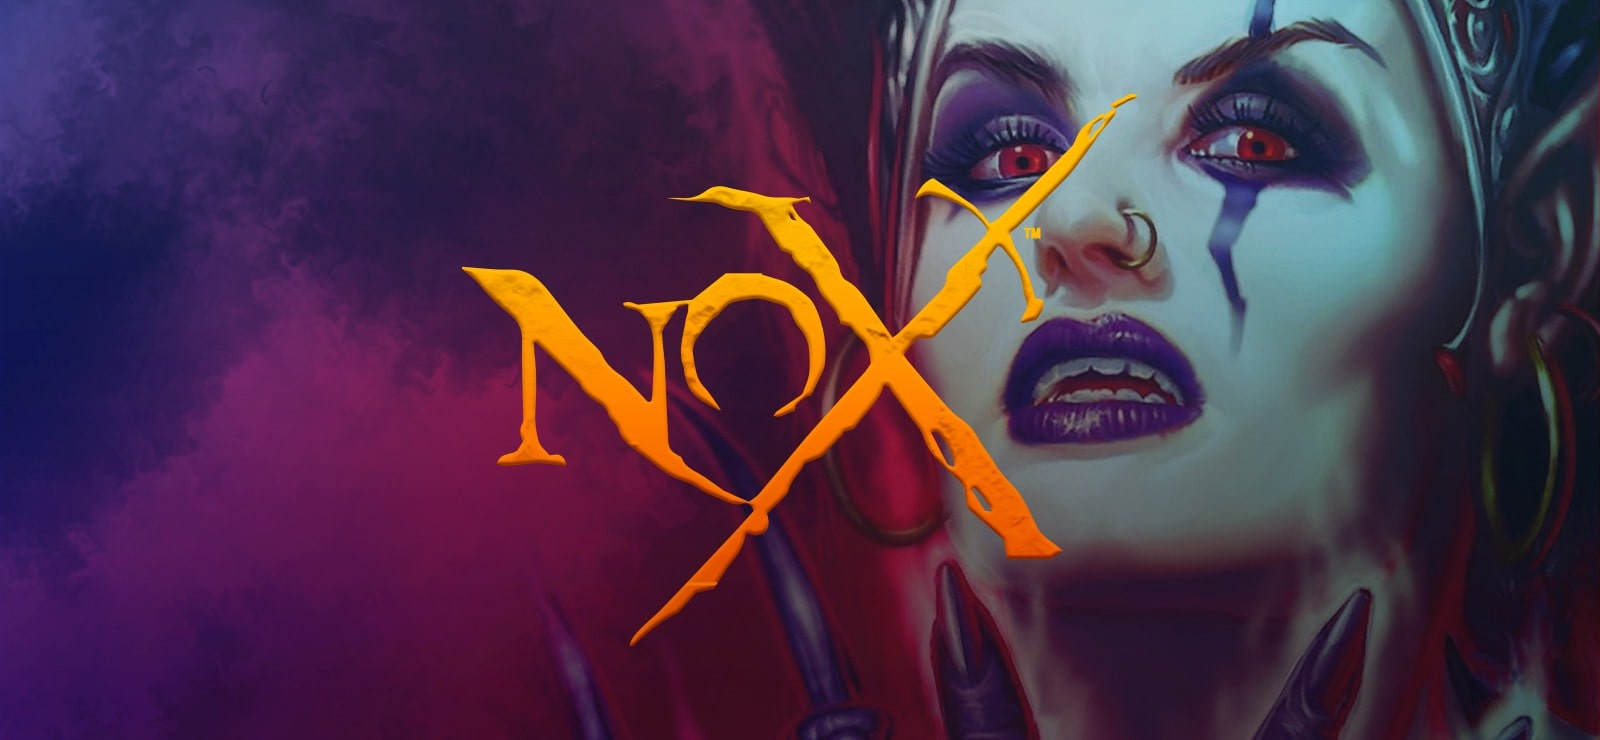 Nox varies-with-device